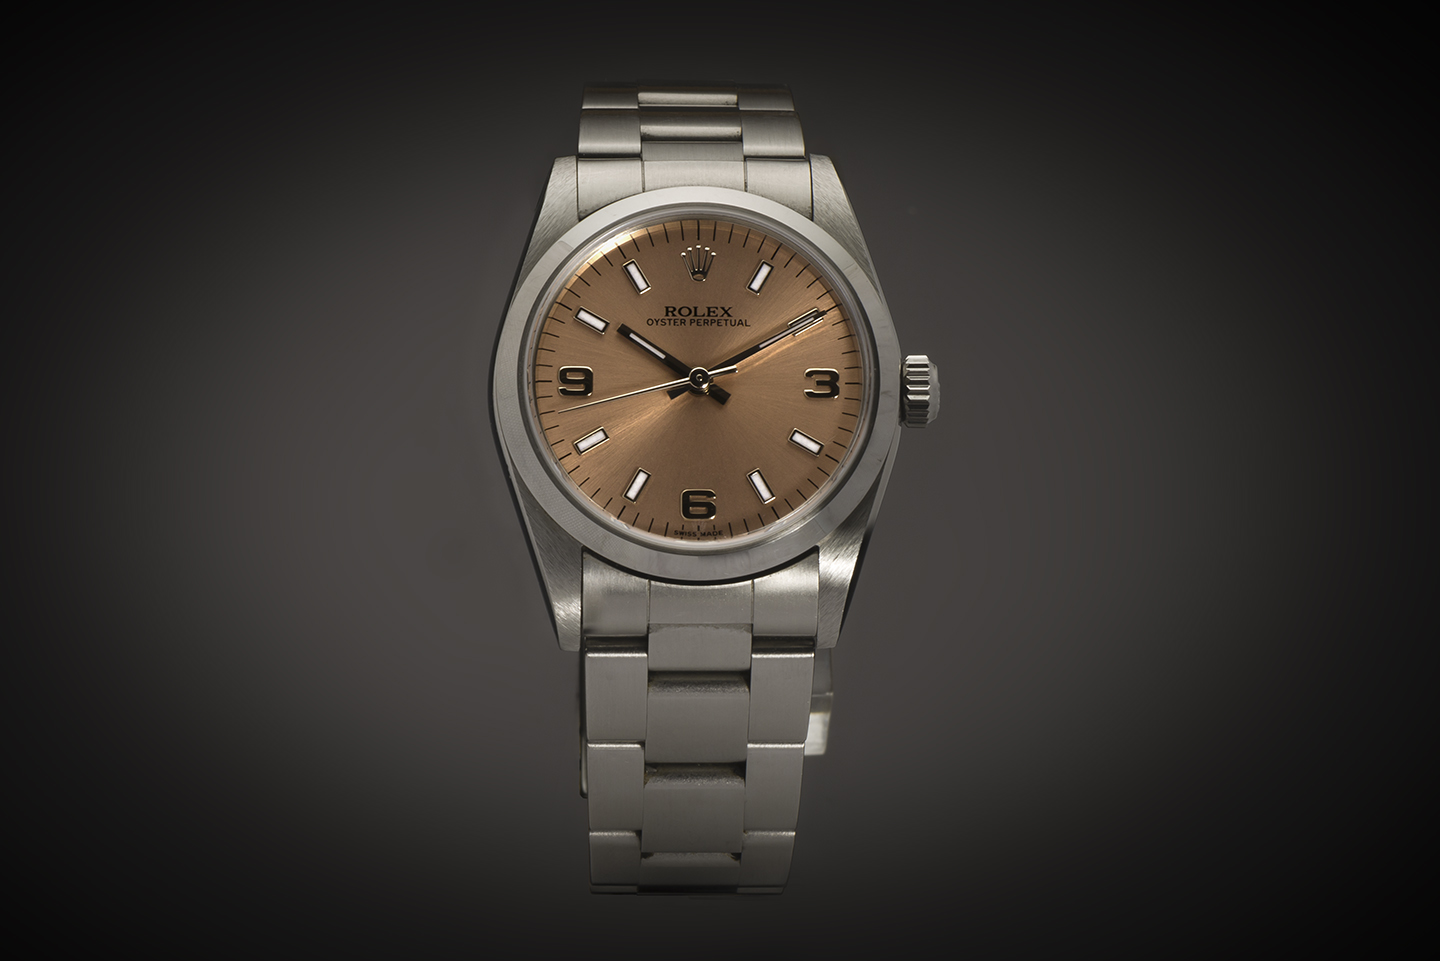 Montre Rolex Oyster Perpetual Lady-1